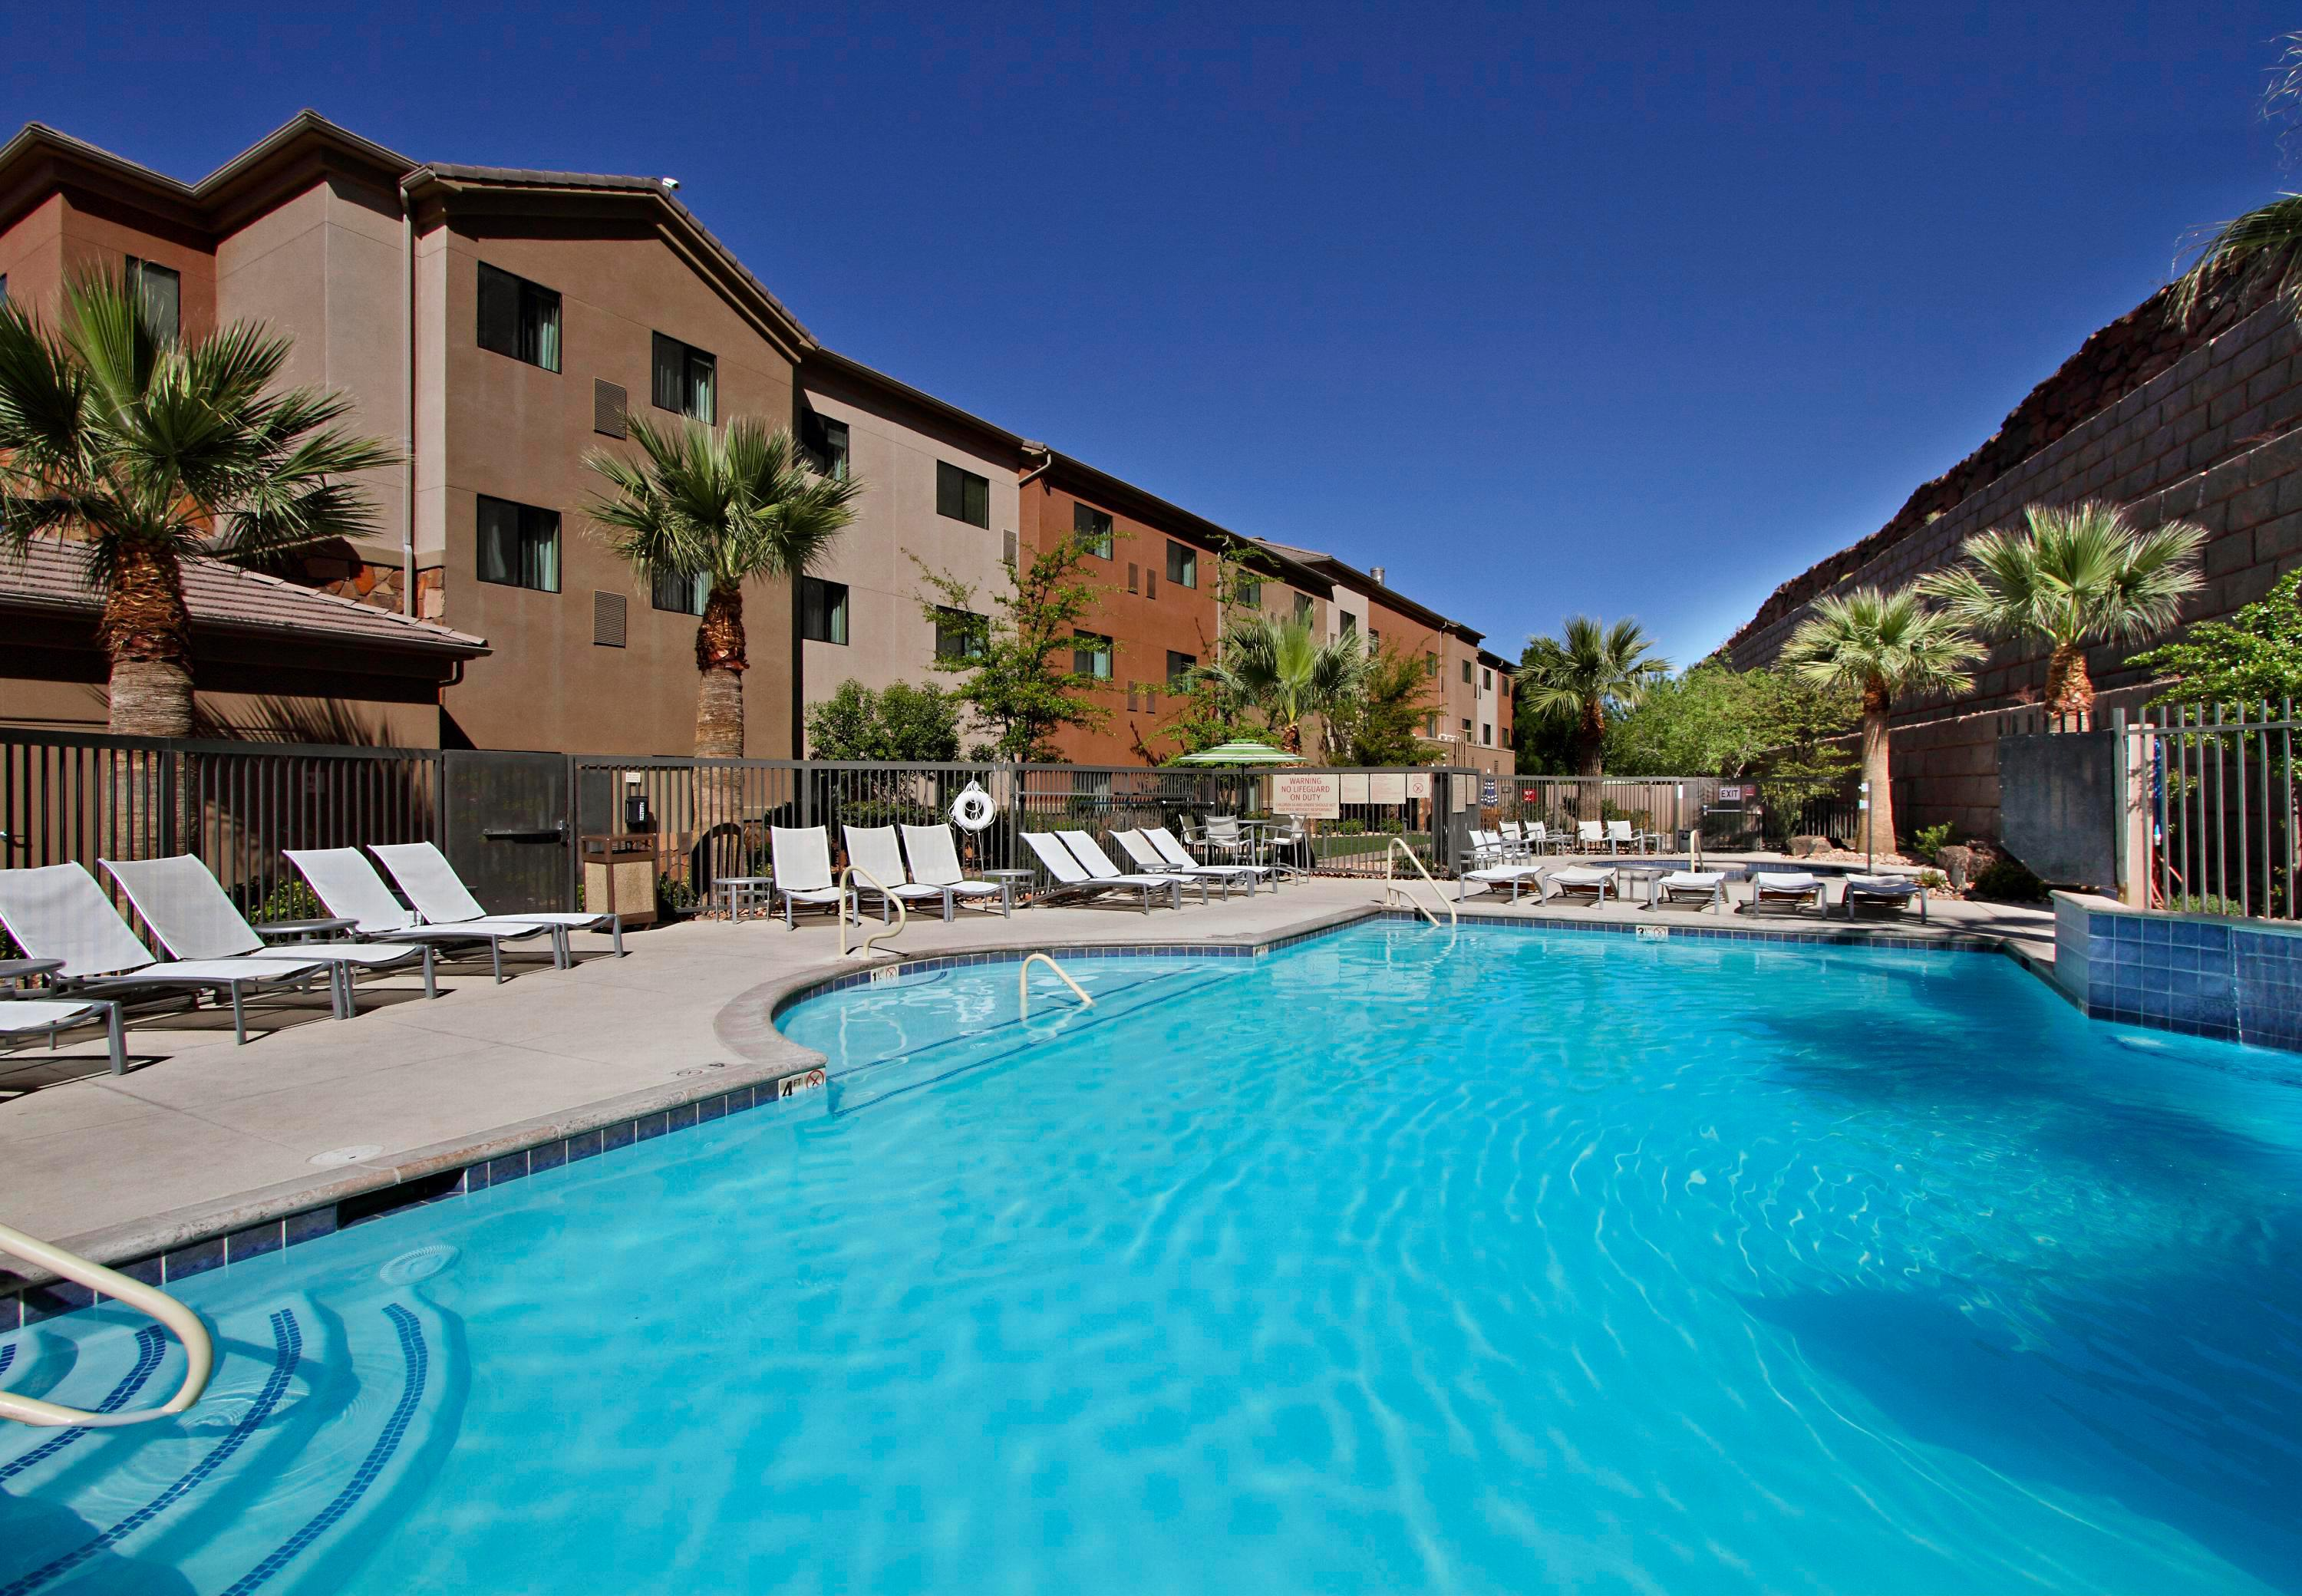 TownePlace Suites by Marriott St. George image 3